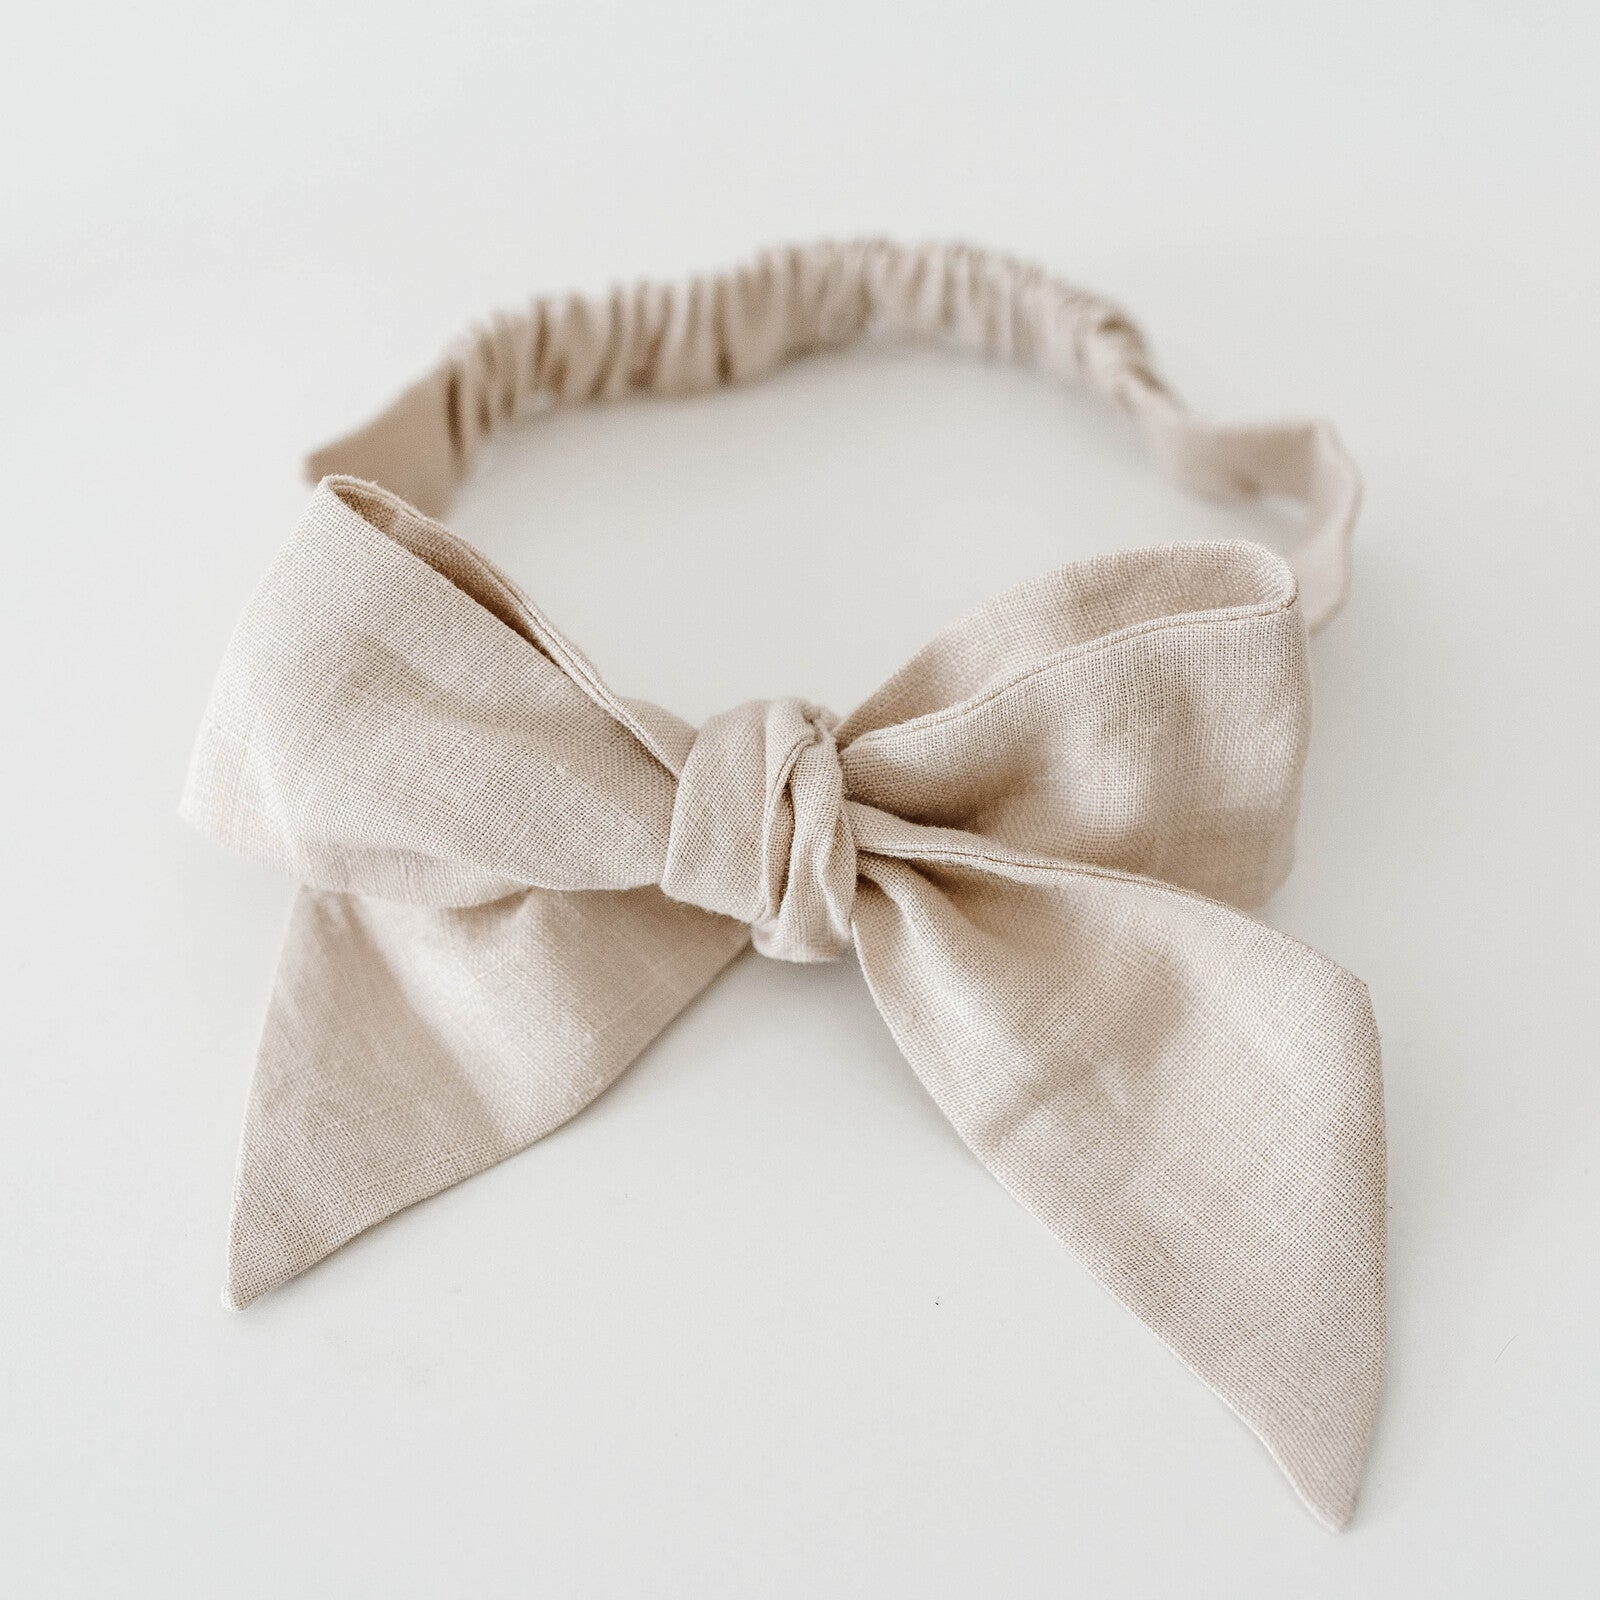 Snuggle Hunny Kids Natural Linen Baby Bow Pre-Tied Headband Baby Wrap